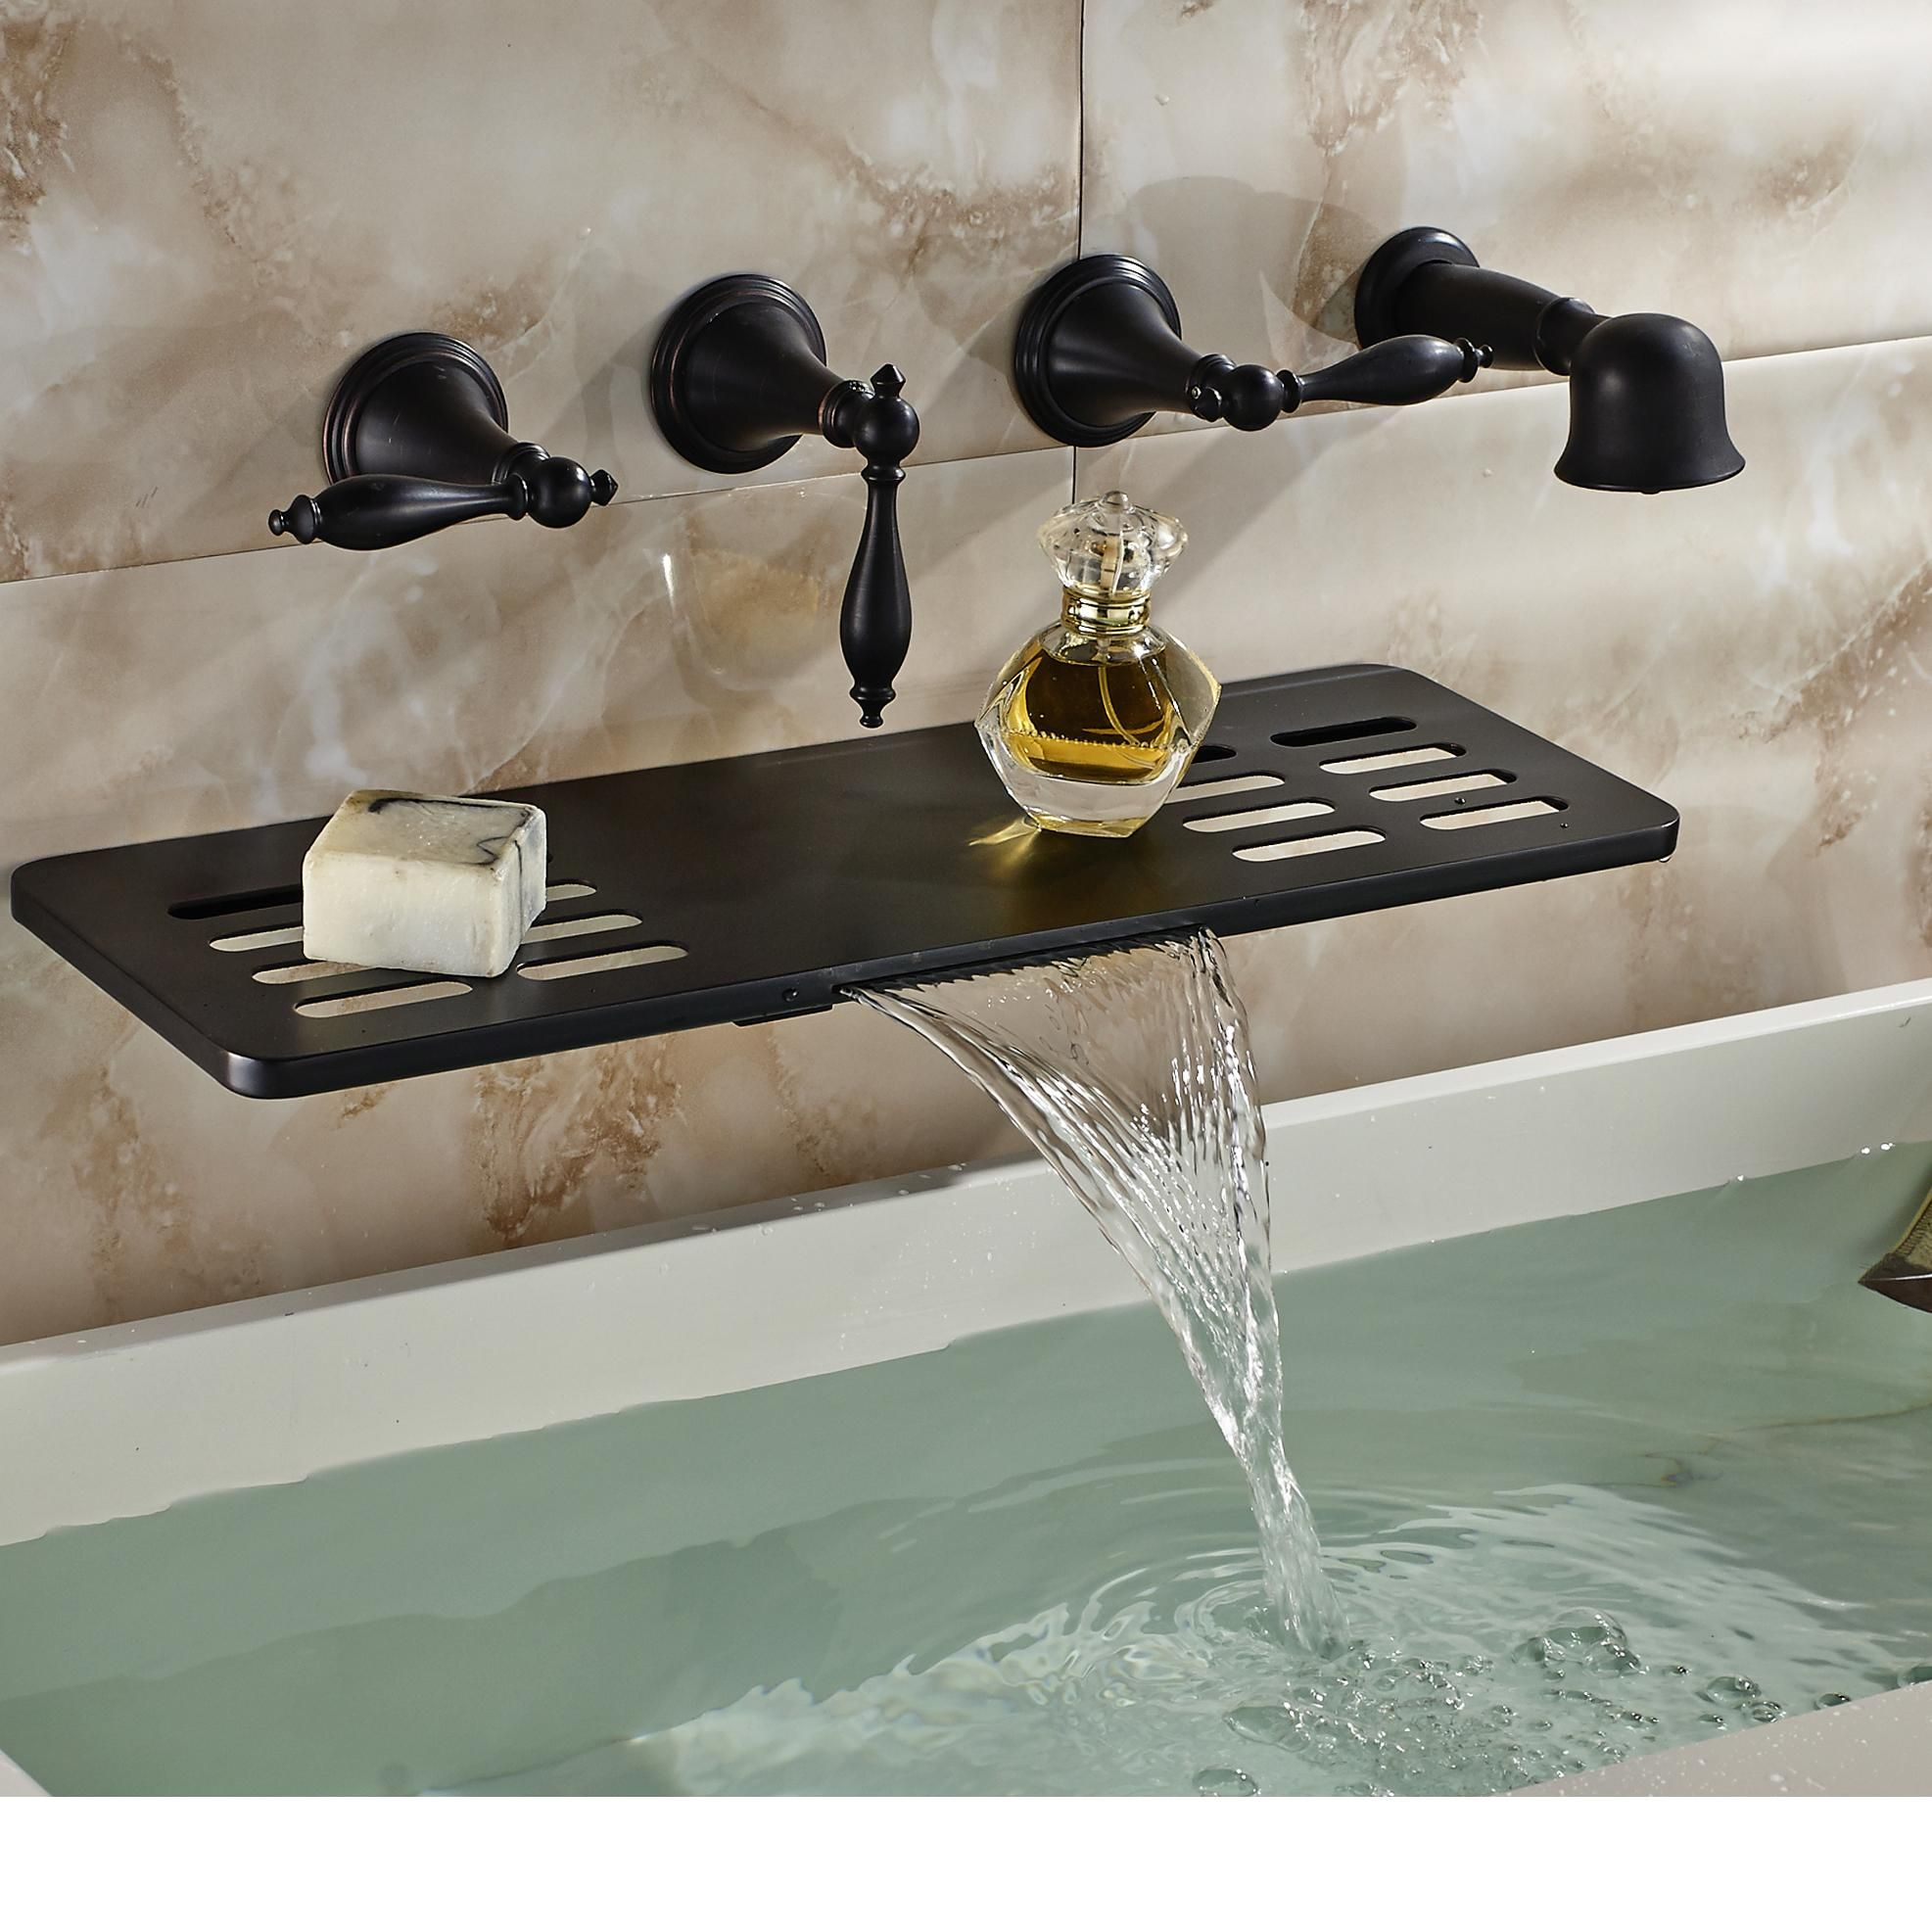 wall mount kitchen faucet with sprayer orange chairs wholesale and retail mounted bathroom tub oil